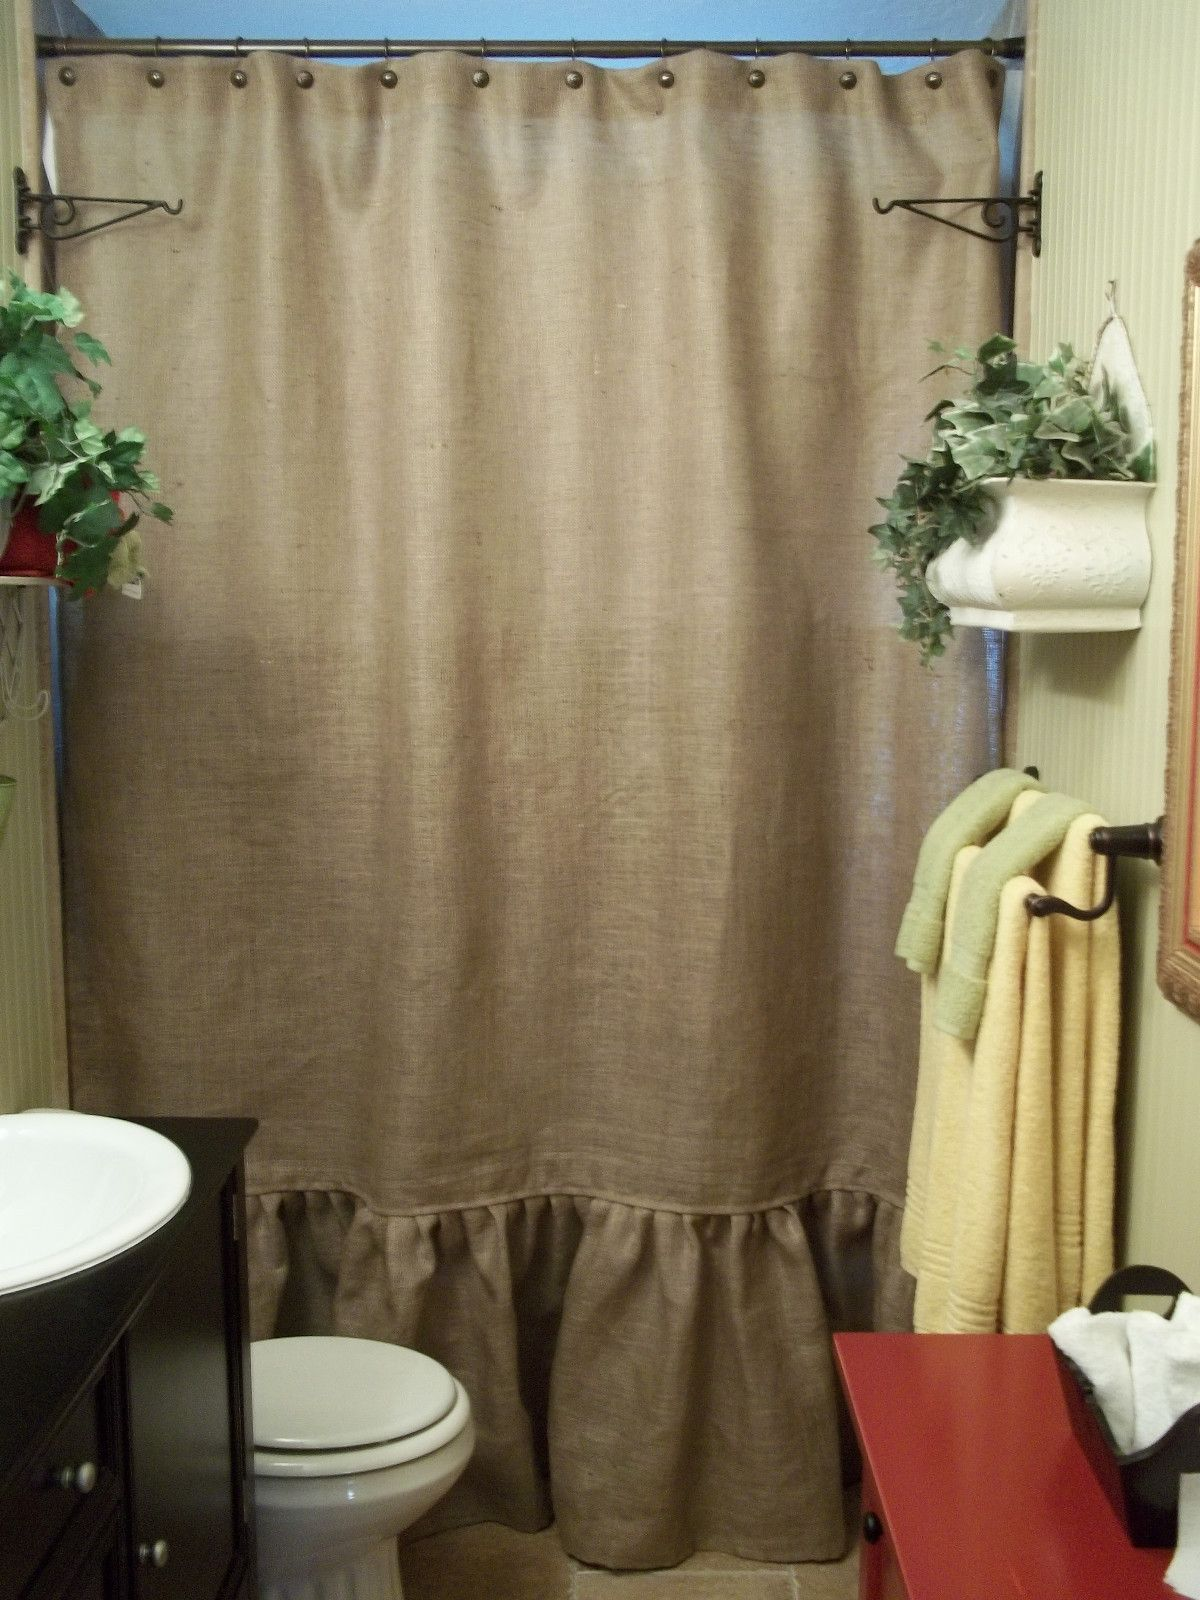 Ruffled Bottom Burlap Shower Curtain Ebay 2 Available Burlap